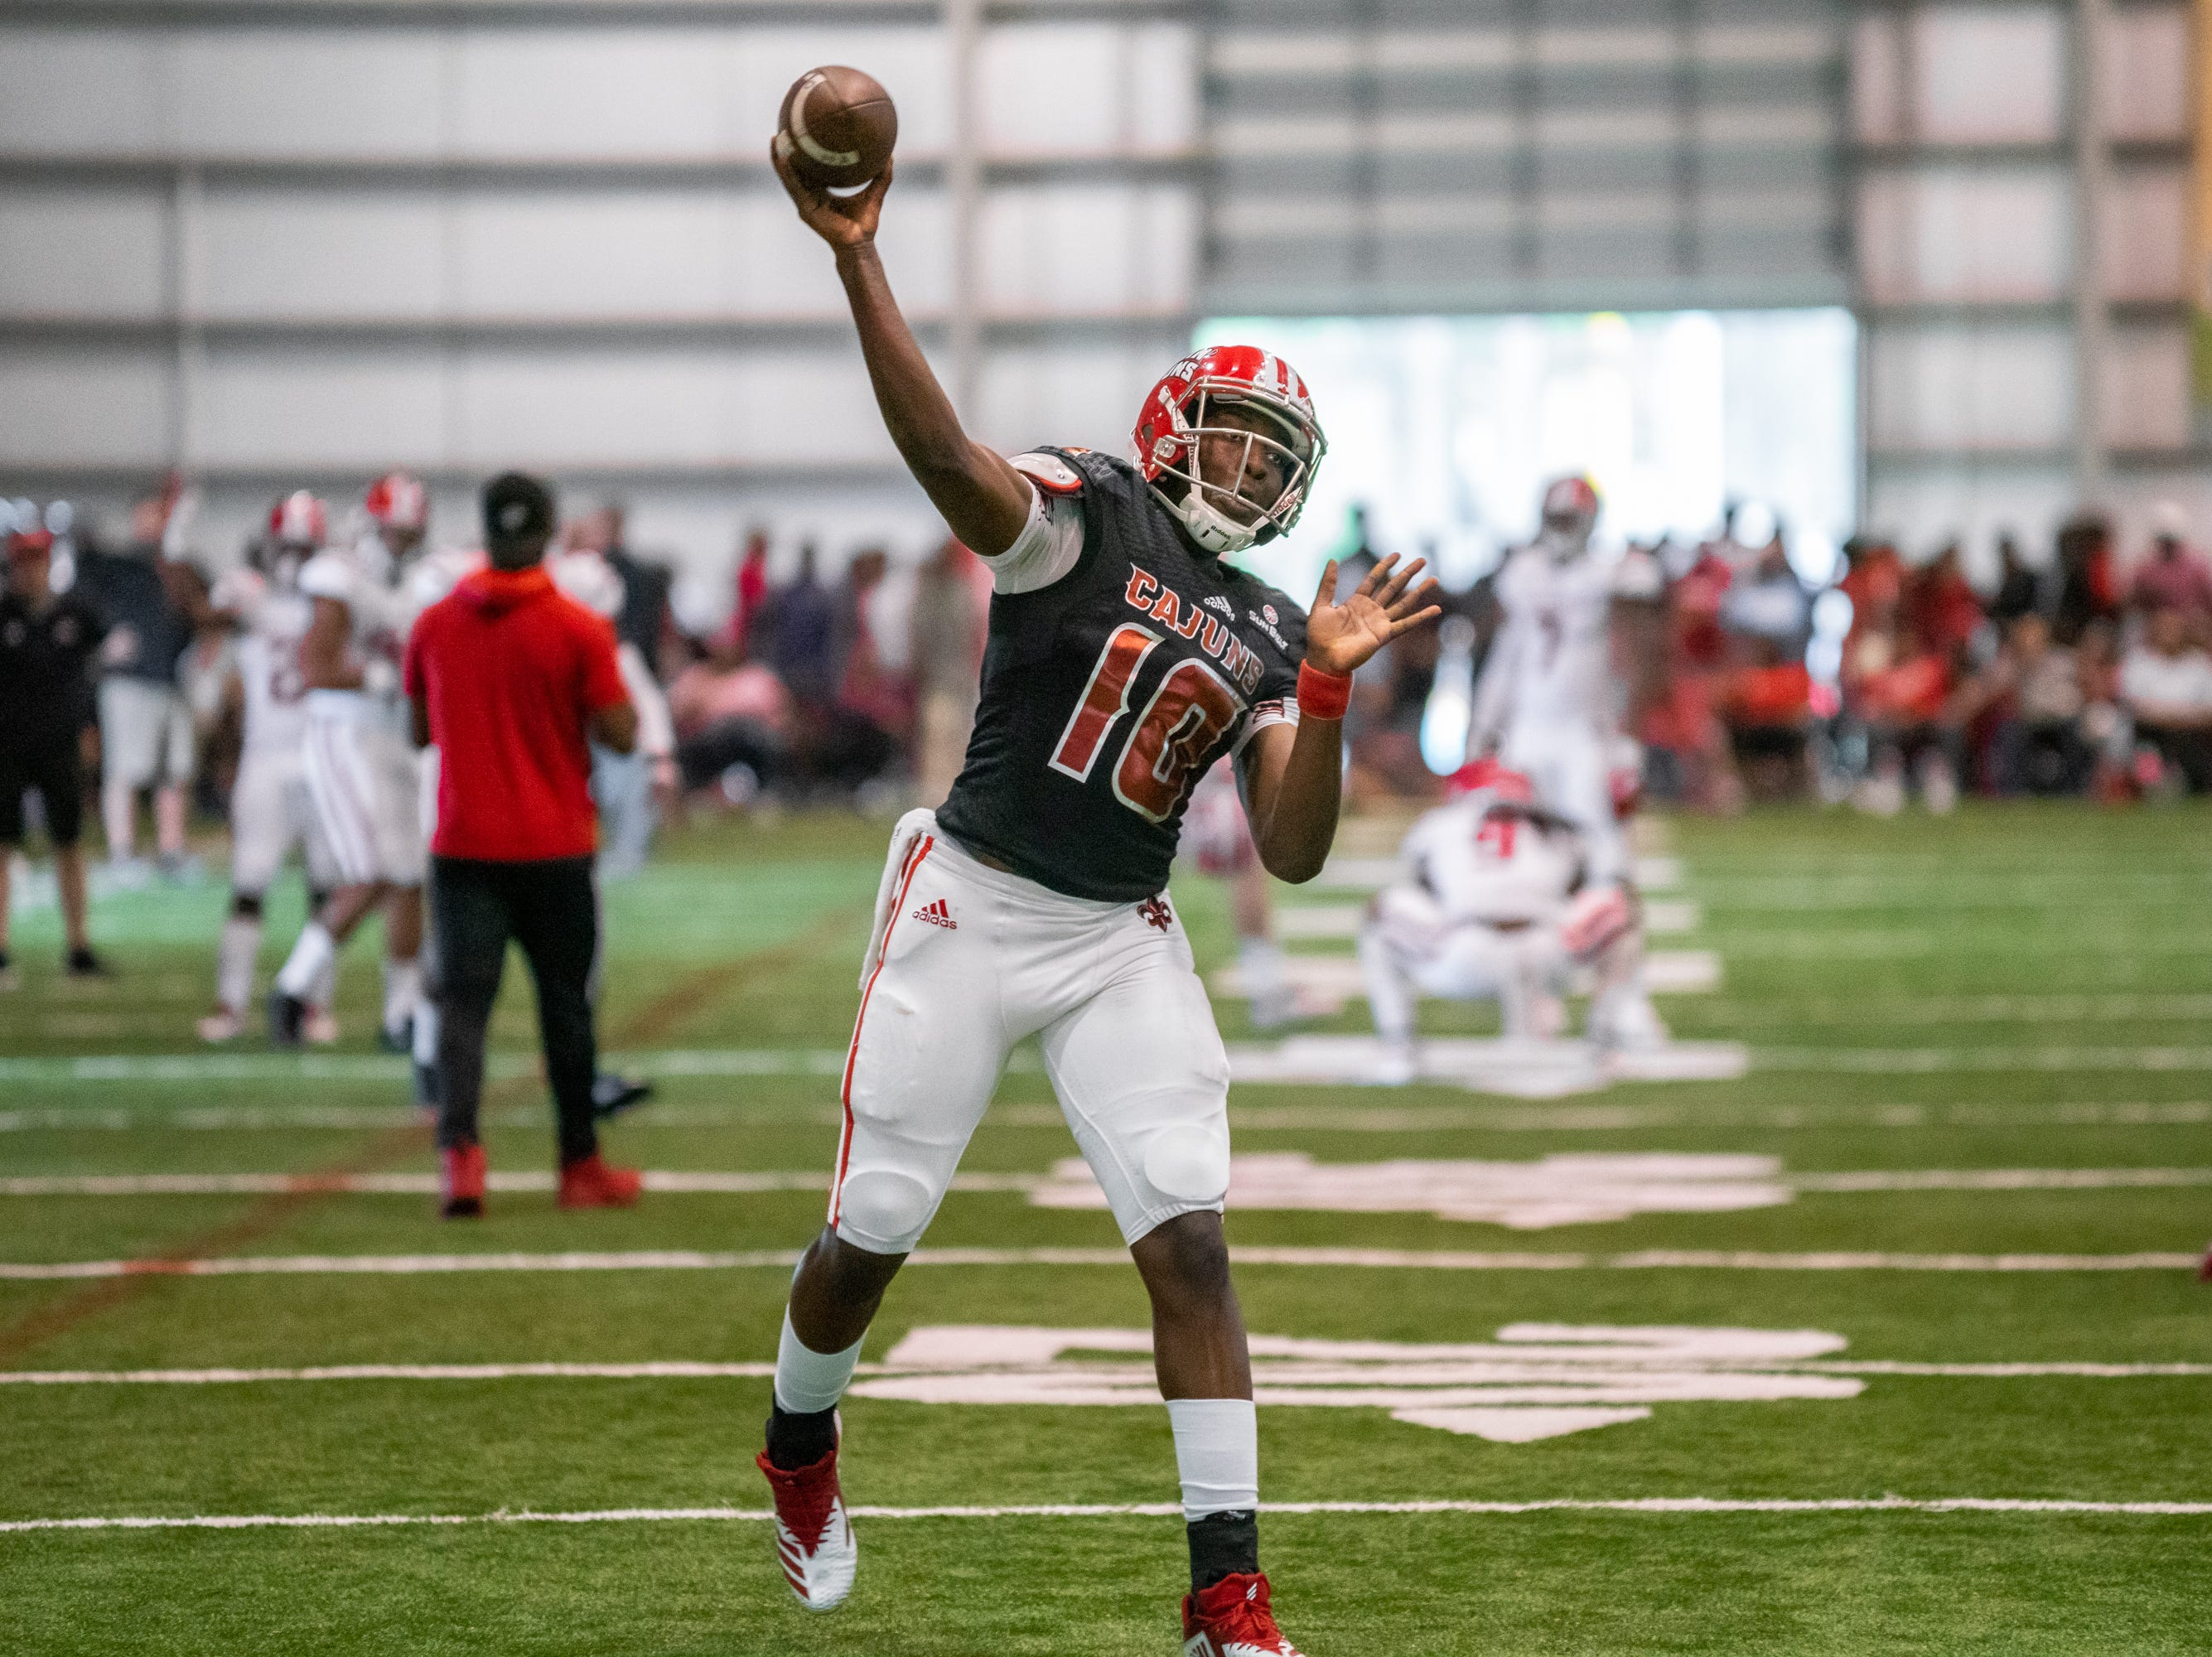 UL's quarterback Clifton McDowell practices his throw as the Ragin' Cajuns football team plays their annual Spring football game against one another in the Leon Moncla trainig facility on April 13, 2019.